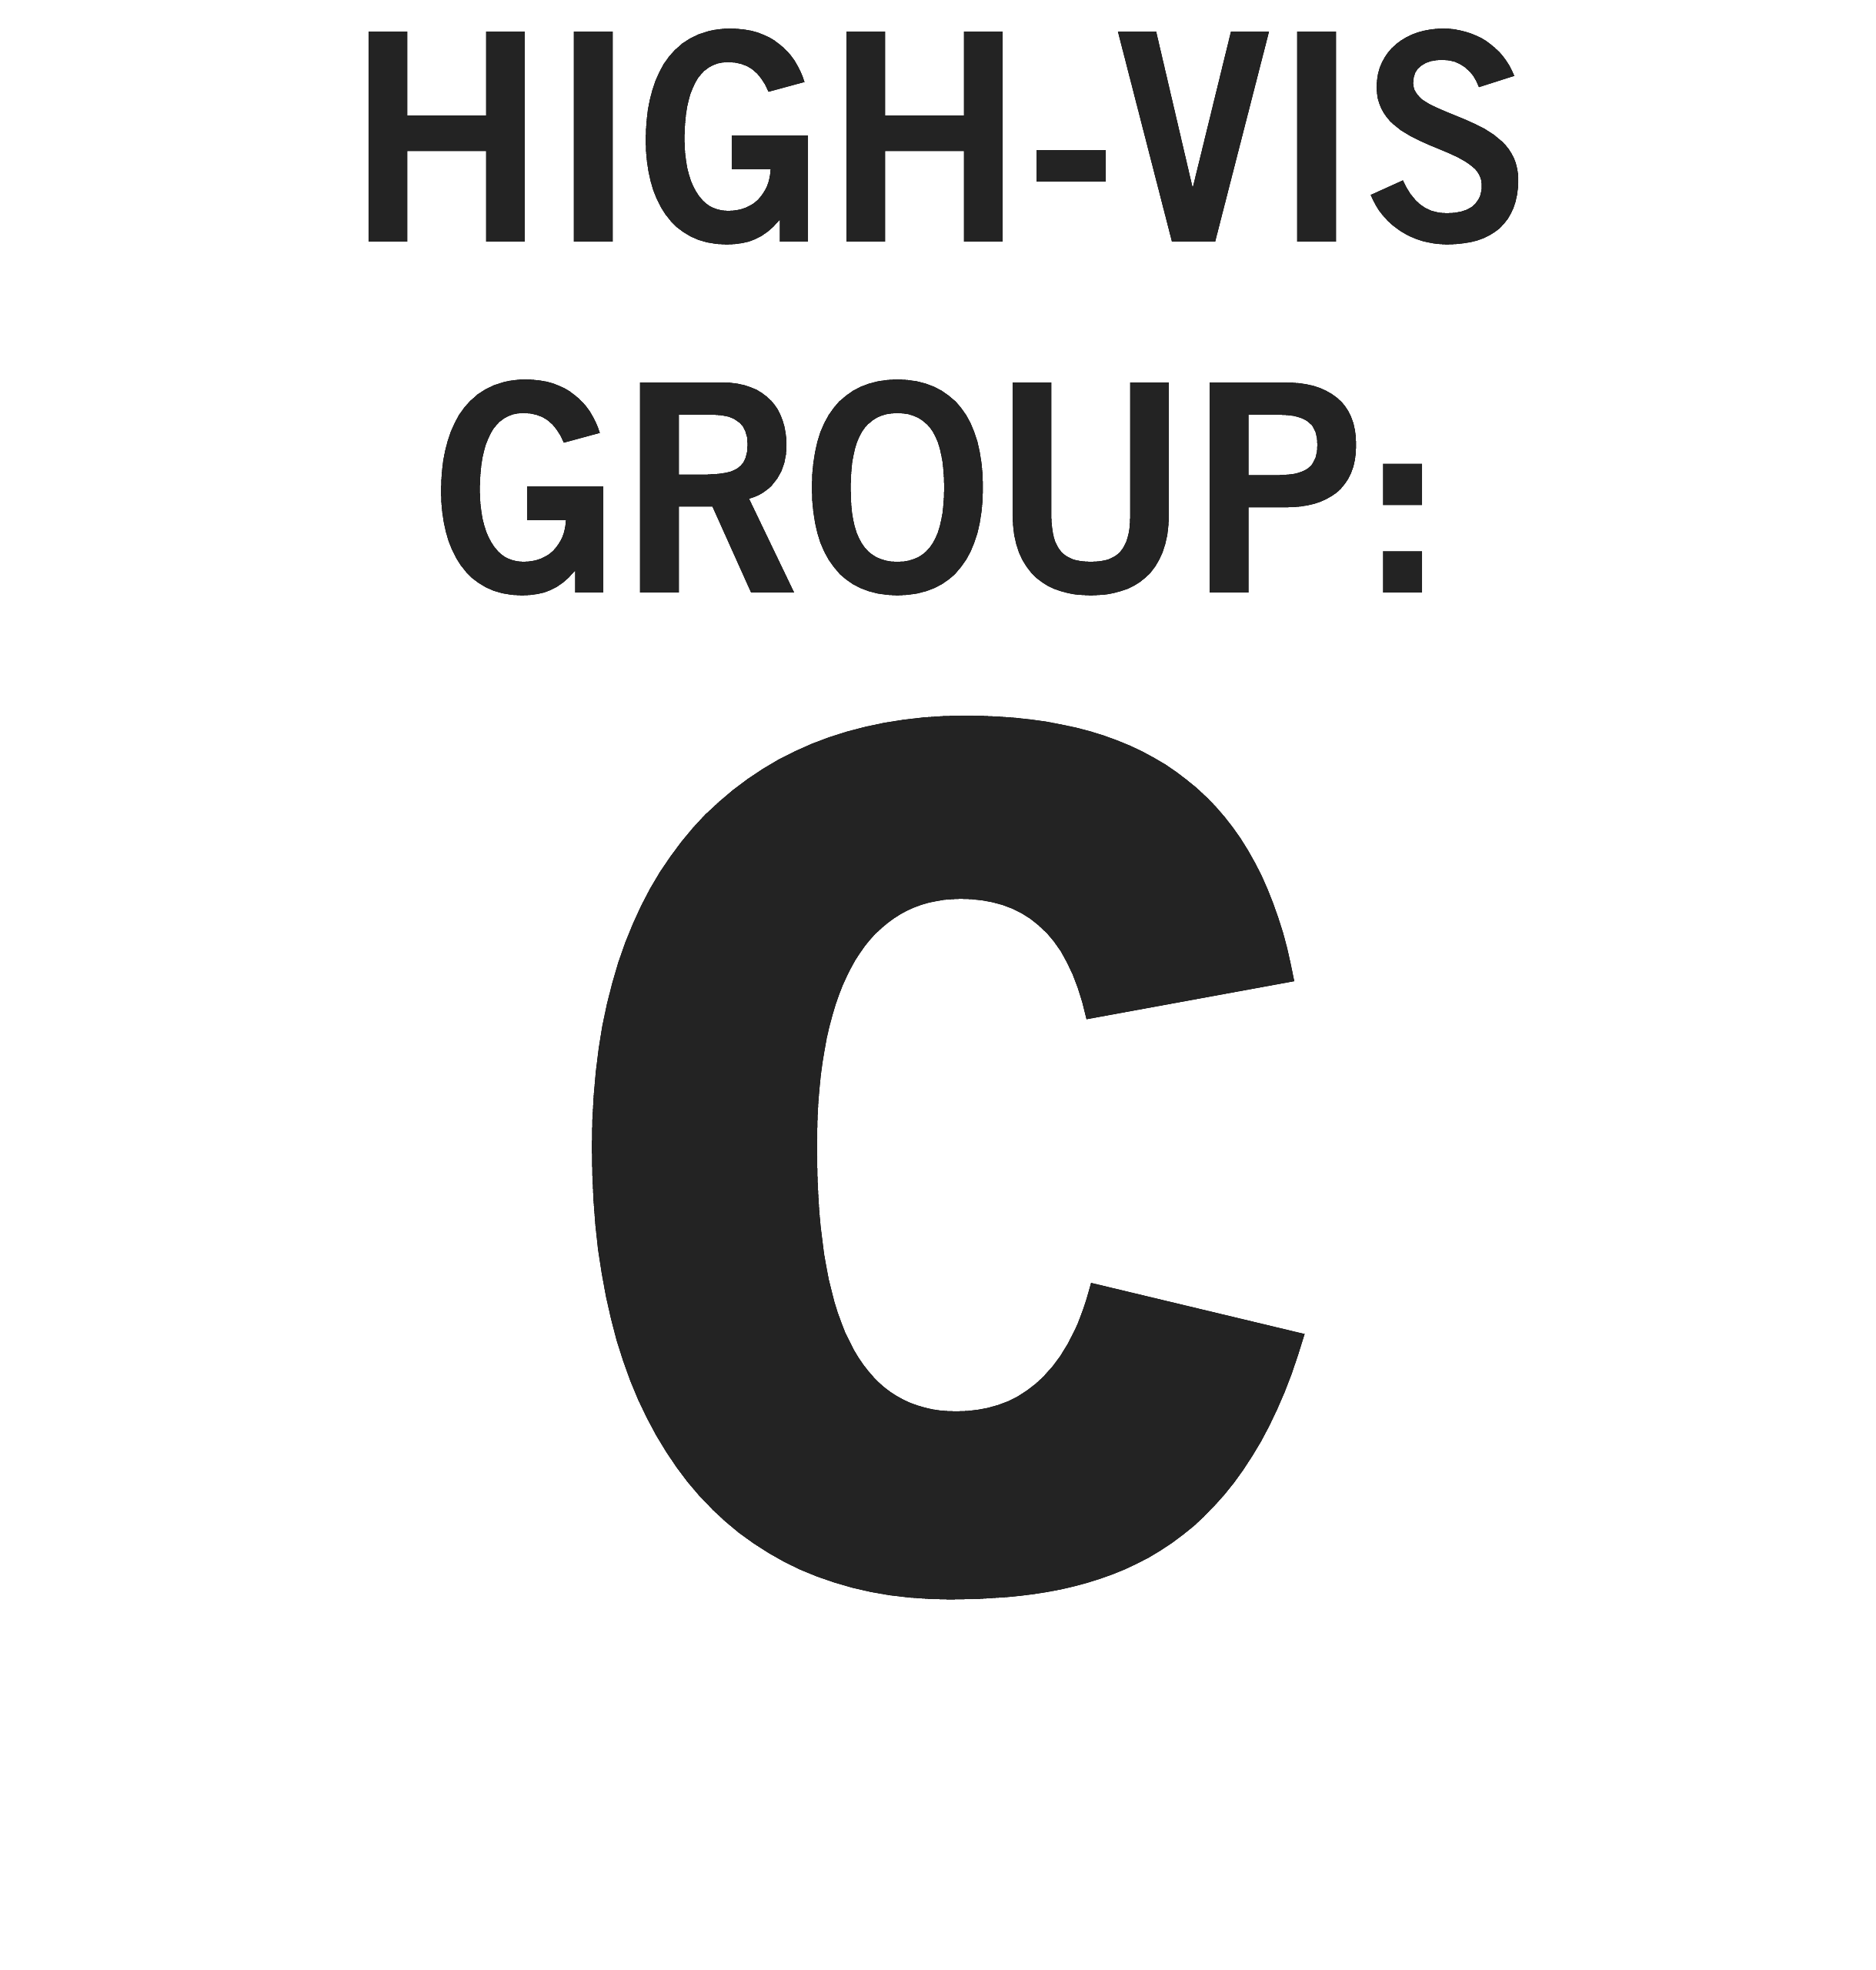 High-vis Group C